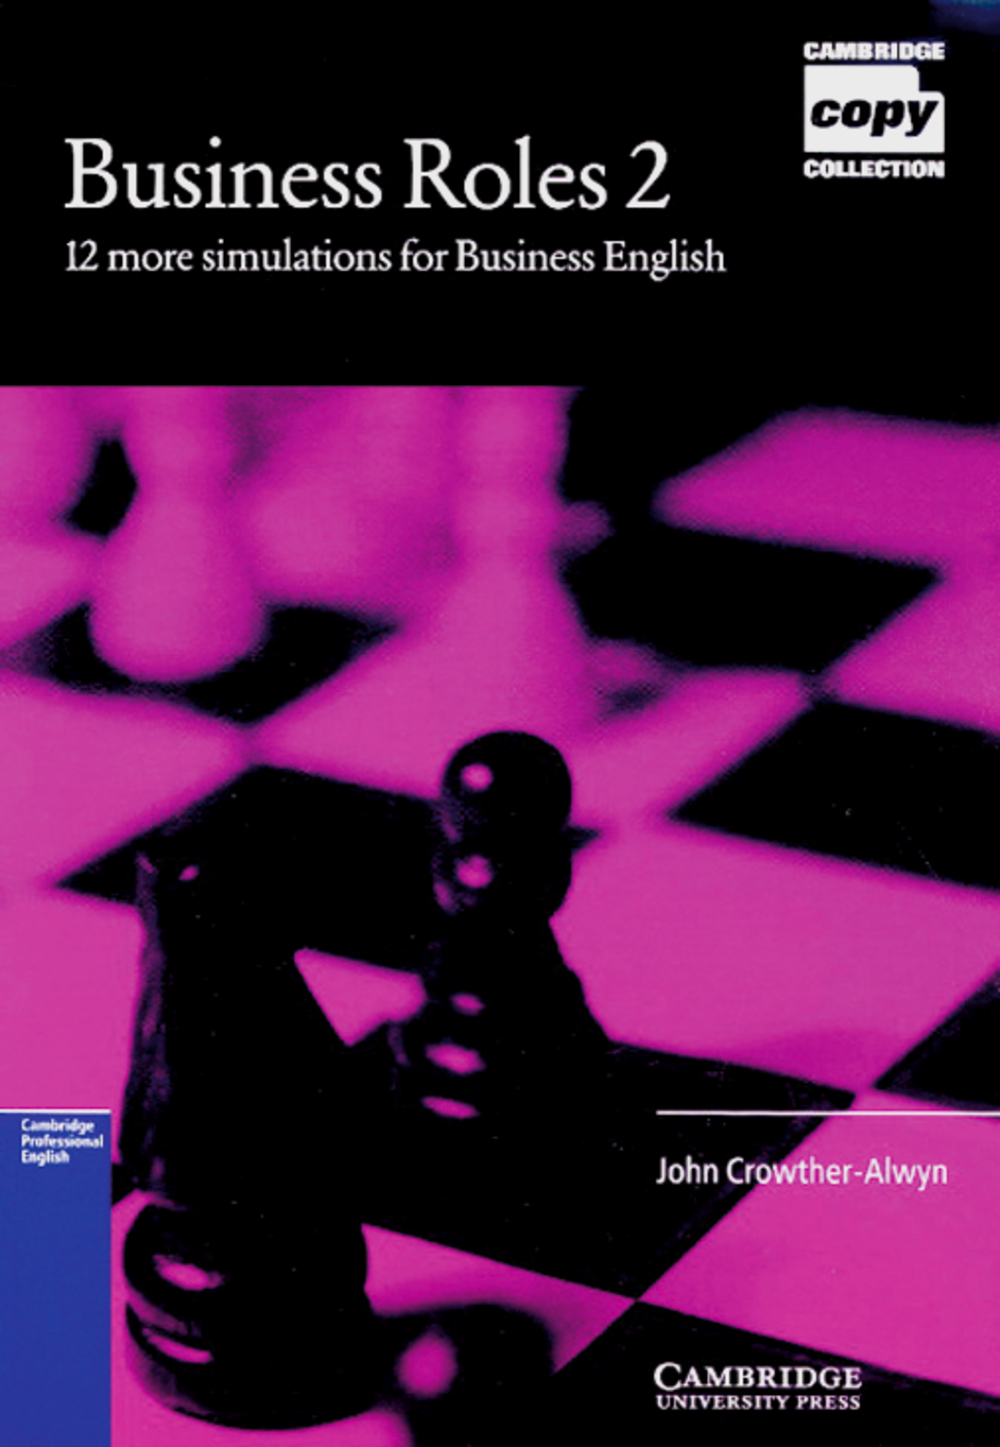 Business Roles, Vol.2: 12 more simulations for Business English. Photocopiable Resource Book for Students at intermediat